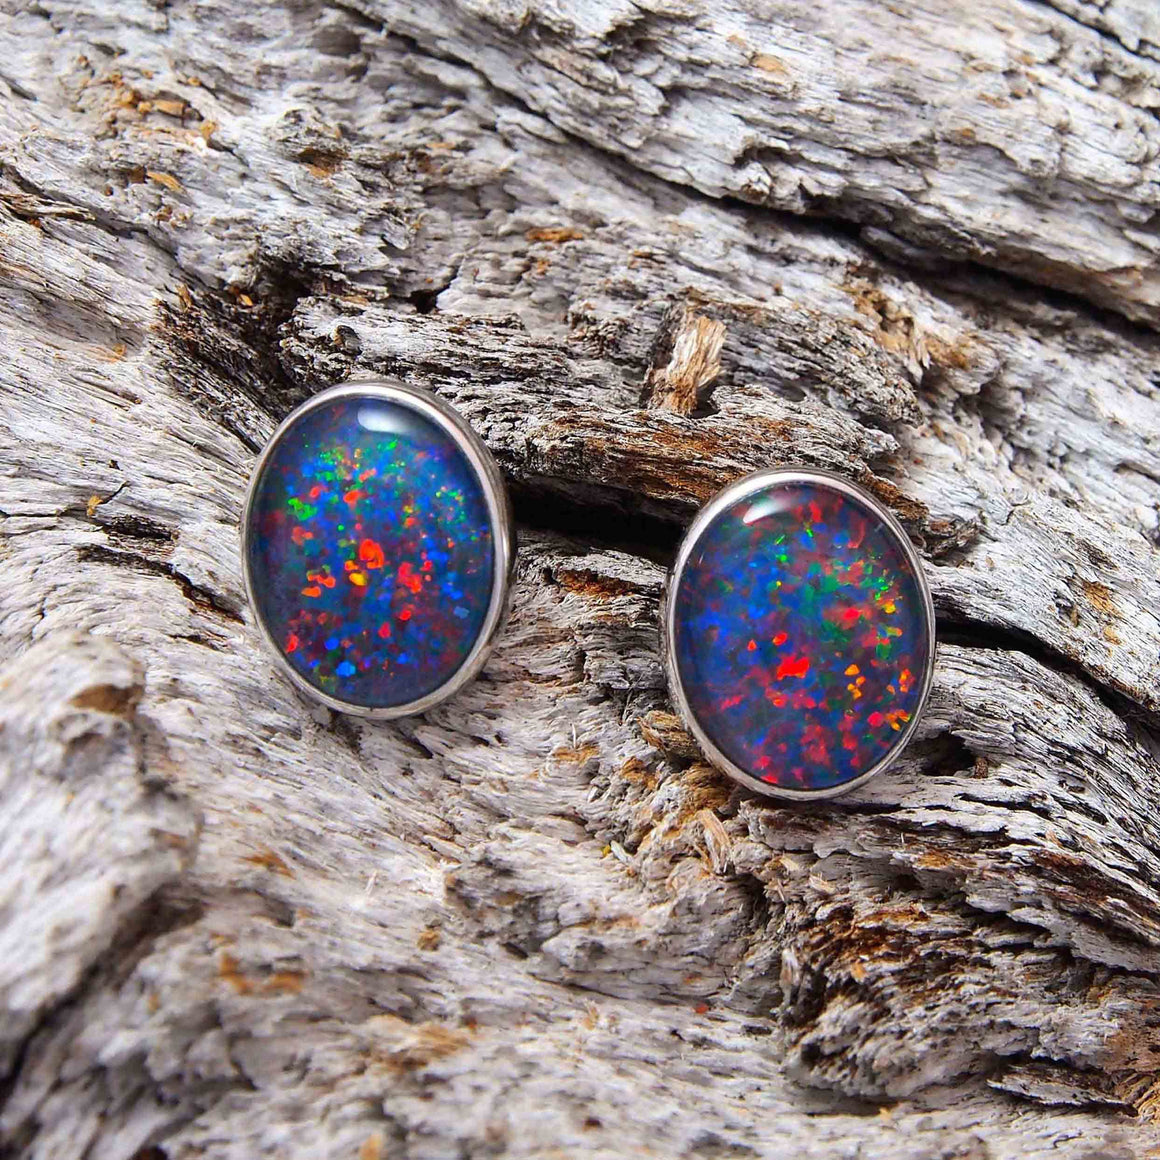 Elegant 9ct white gold oval stud earrings bezel set with multi-colour floral patterned triplet opals